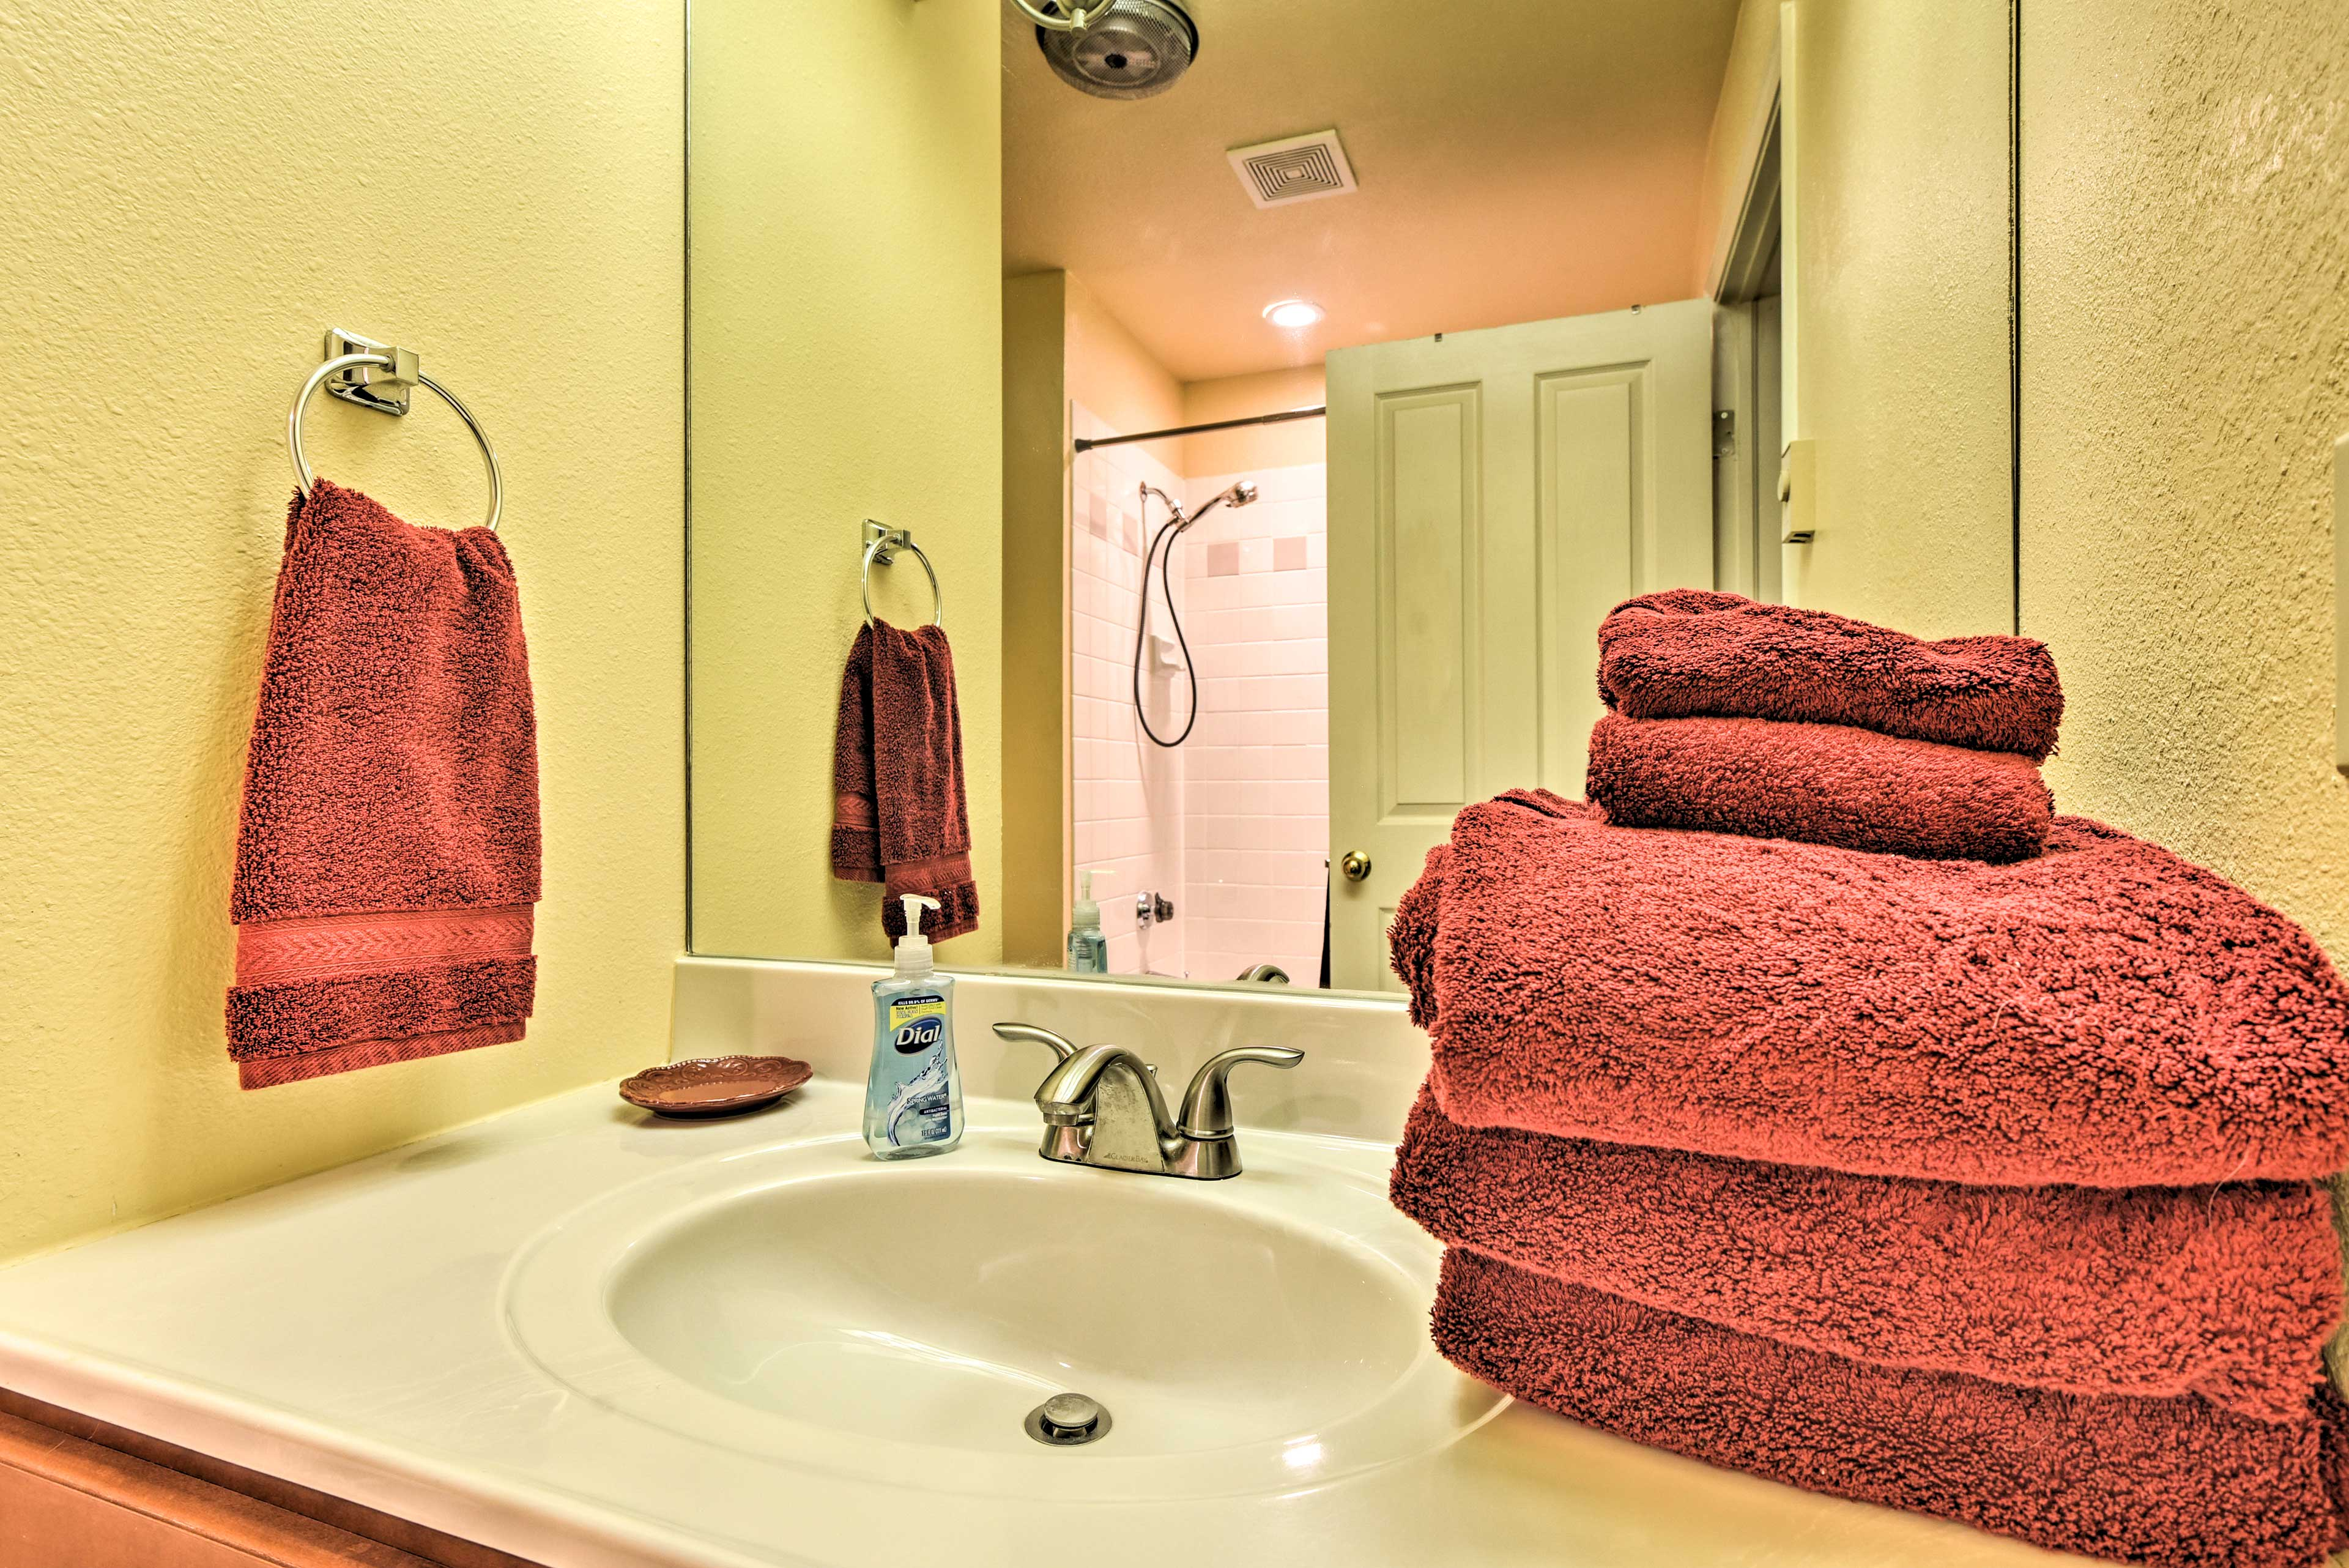 Fresh towels are provided!